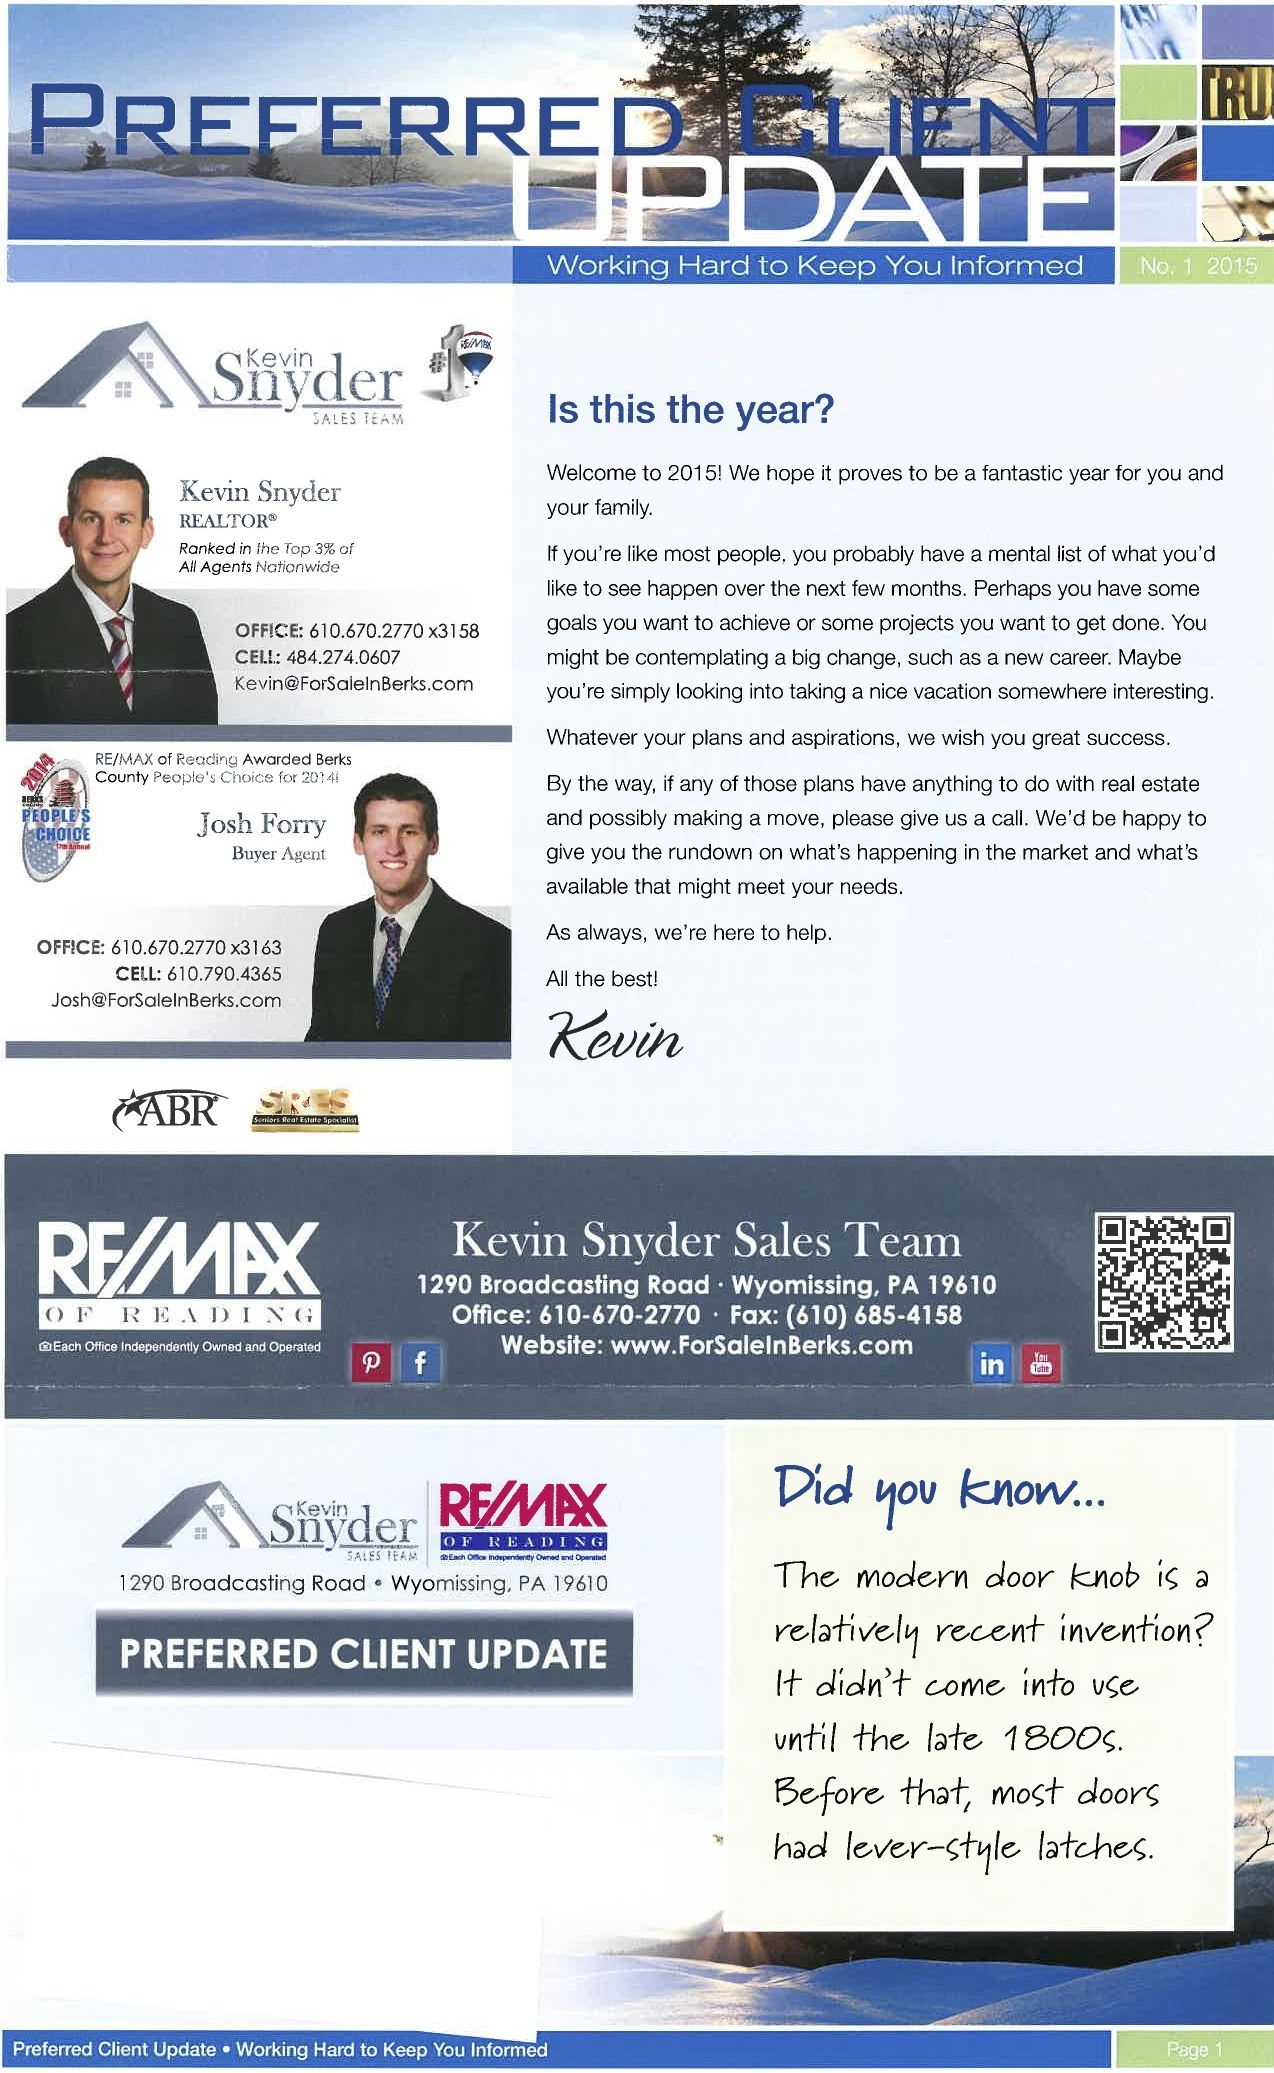 The FIRST issue of our PREFERRED CLIENT UPDATE for the new year! Whatever your plans and aspirations are for the new year, we wish you great success in it!  By the way, if any of those plans have anything to do with real estate, please give us a call!